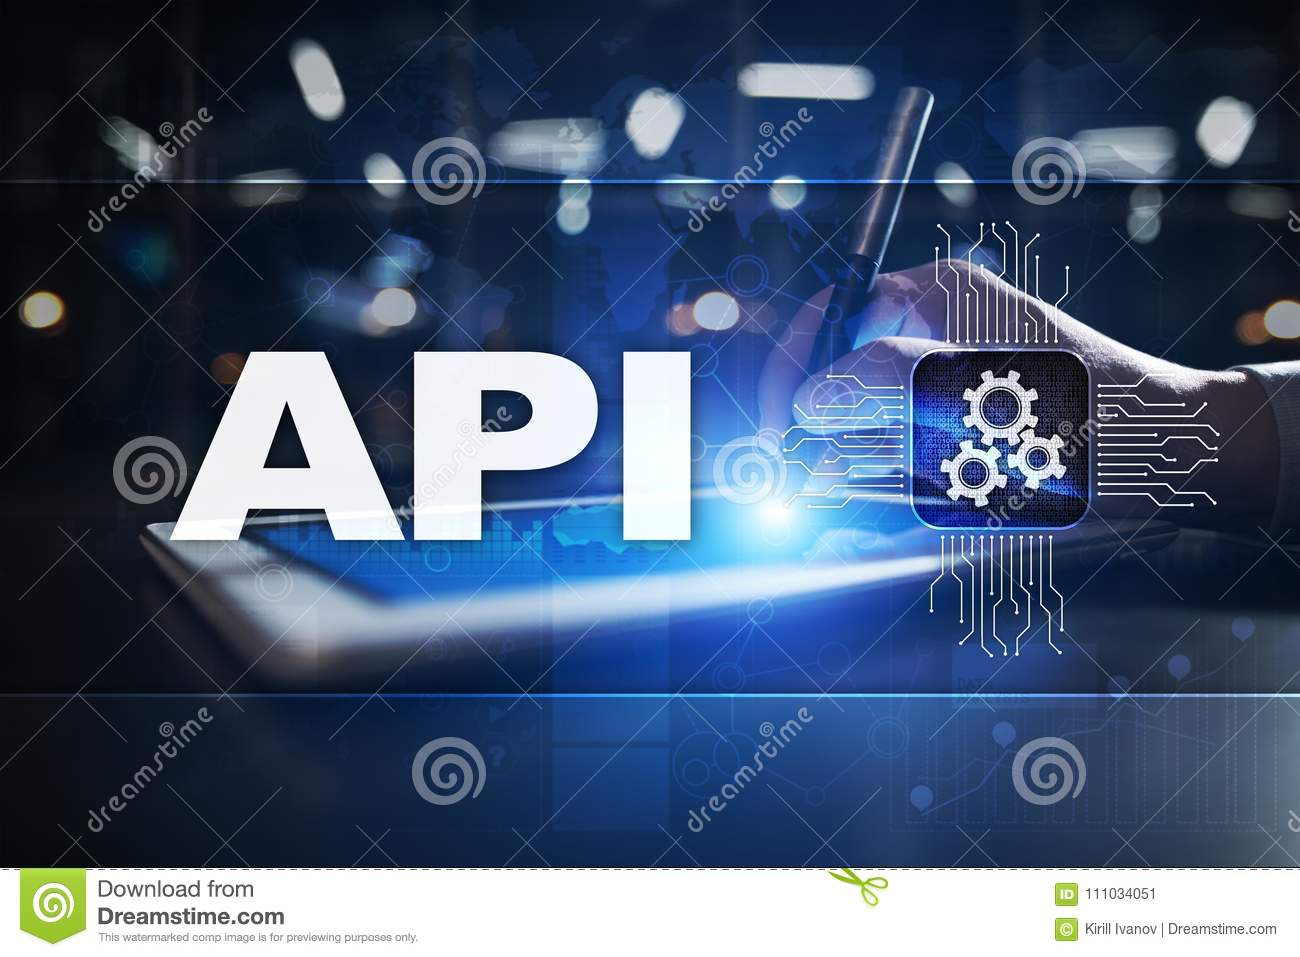 Application programming interface. API. Software development concept.